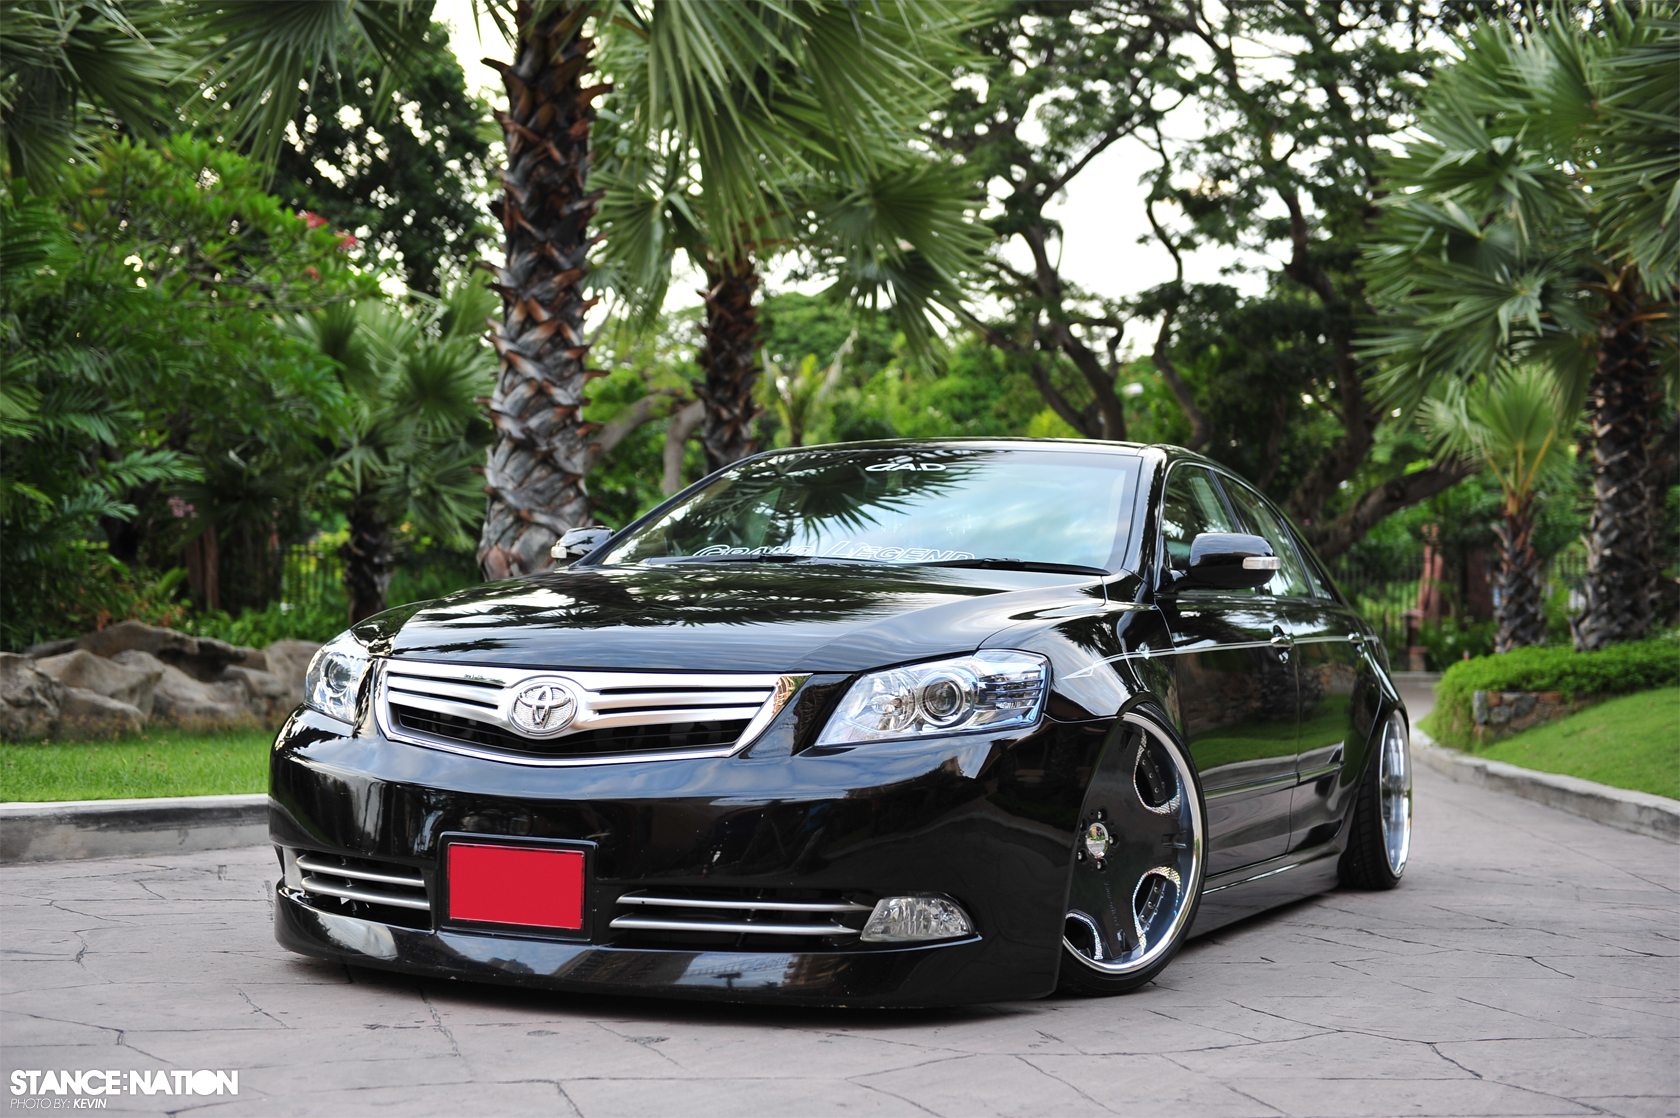 all new toyota camry thailand grand avanza 1.3 e std slammed vip style camry! | stancenation™ // form > function